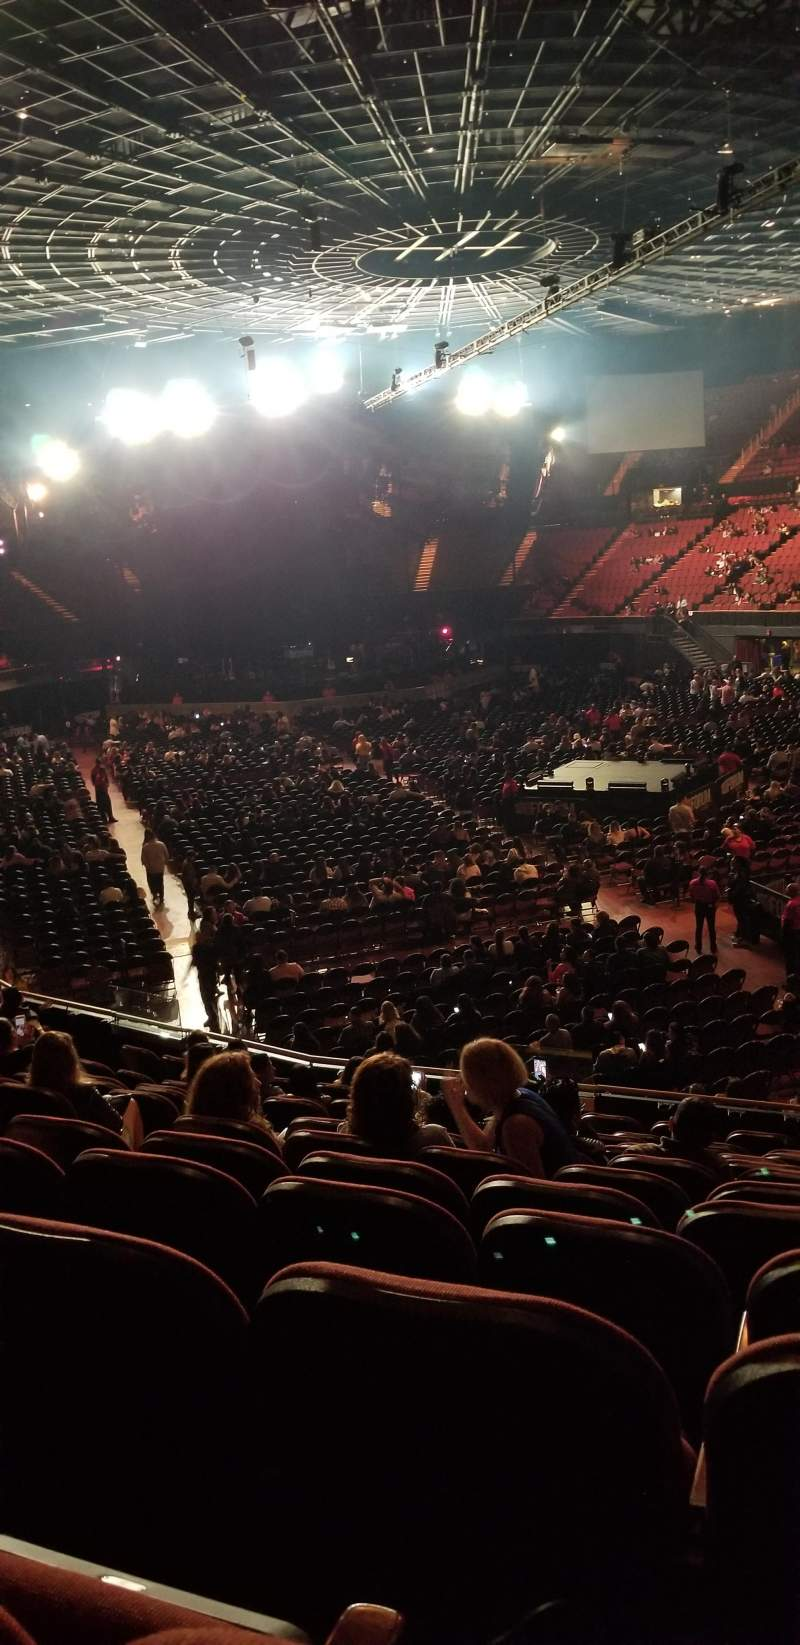 The forum, section: 134, row: 12, seat: 6